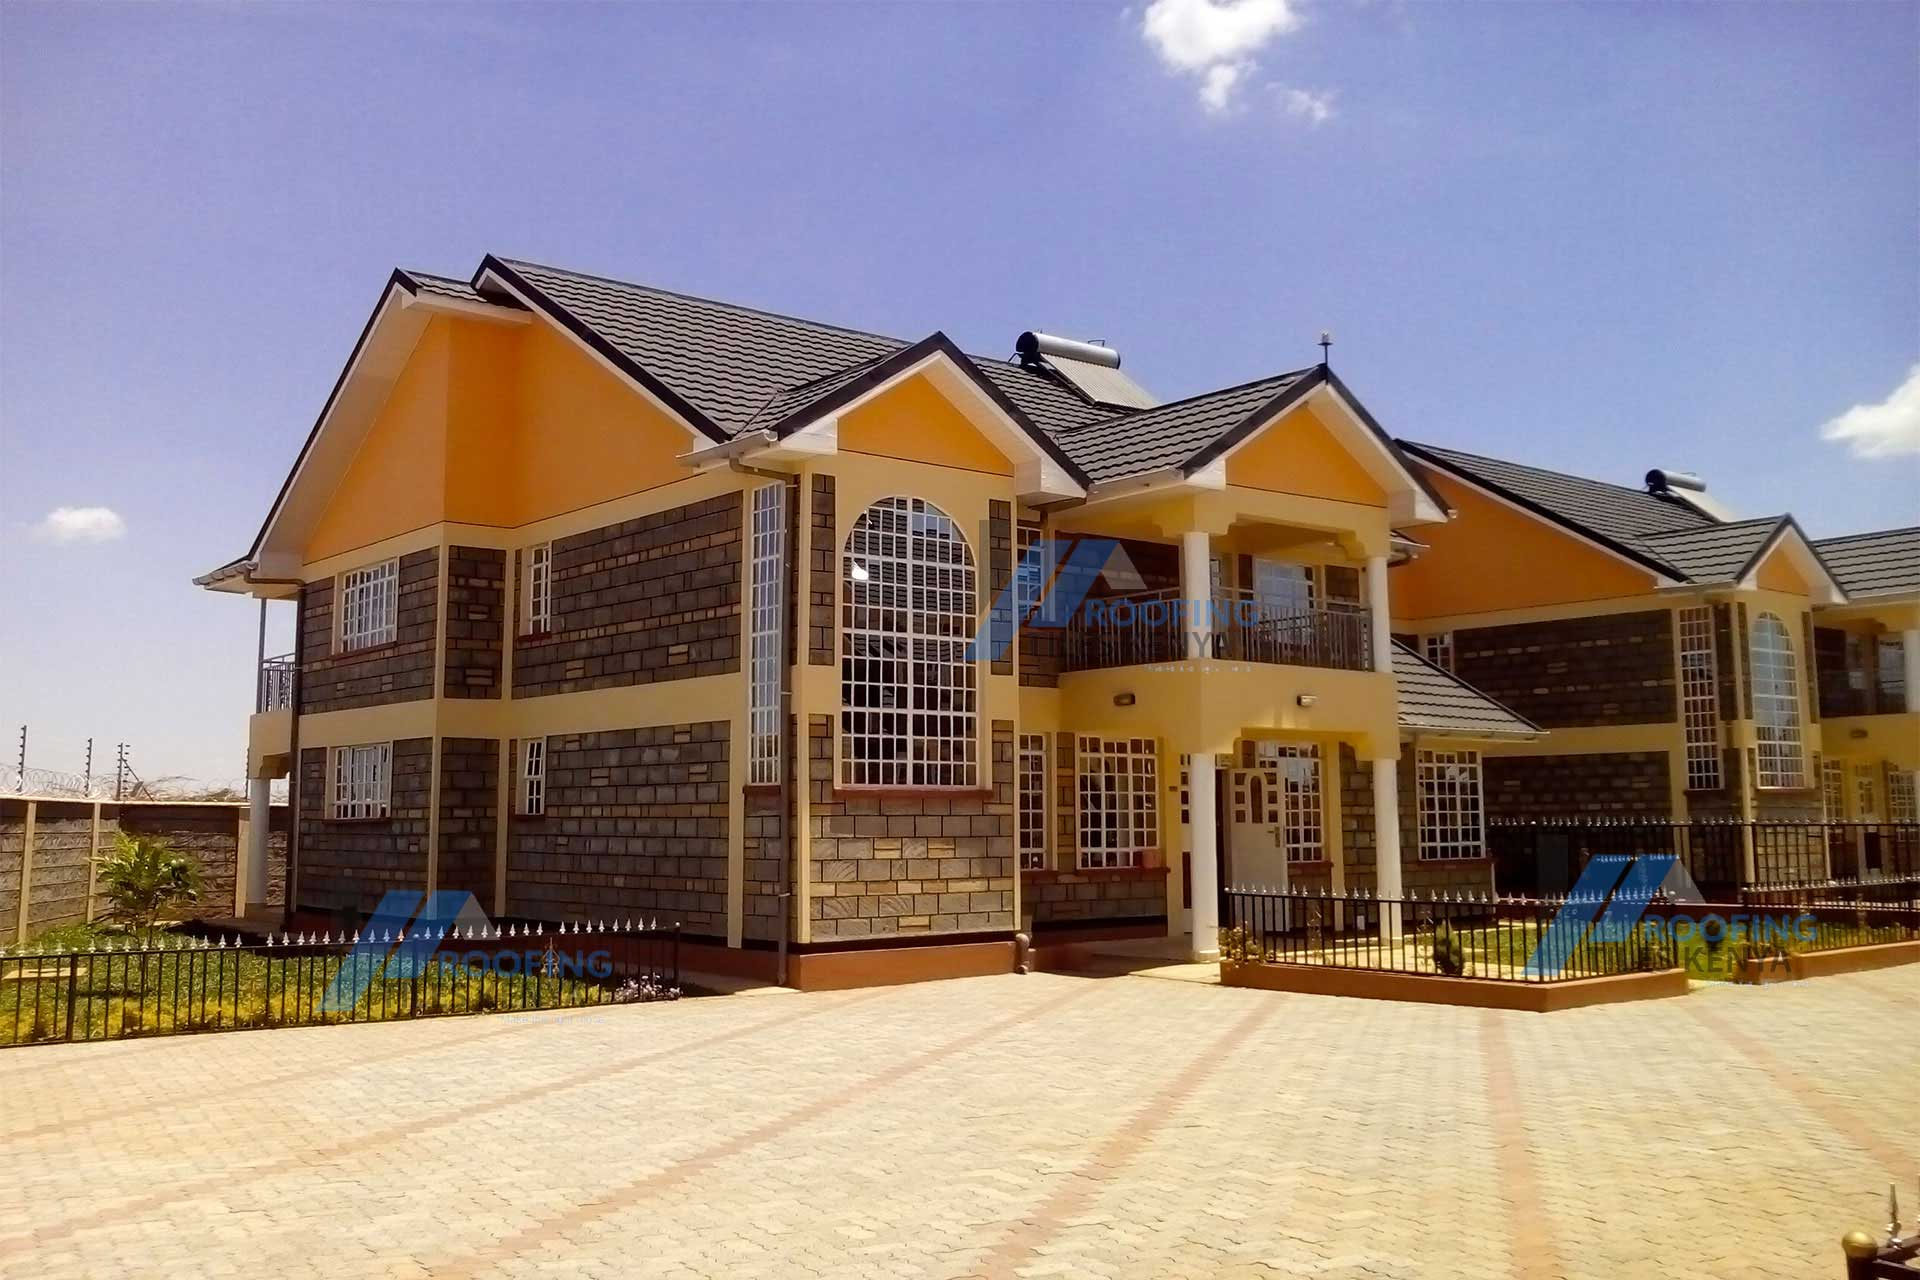 Roofing-tile-kenya-Make-the-best-move-image2